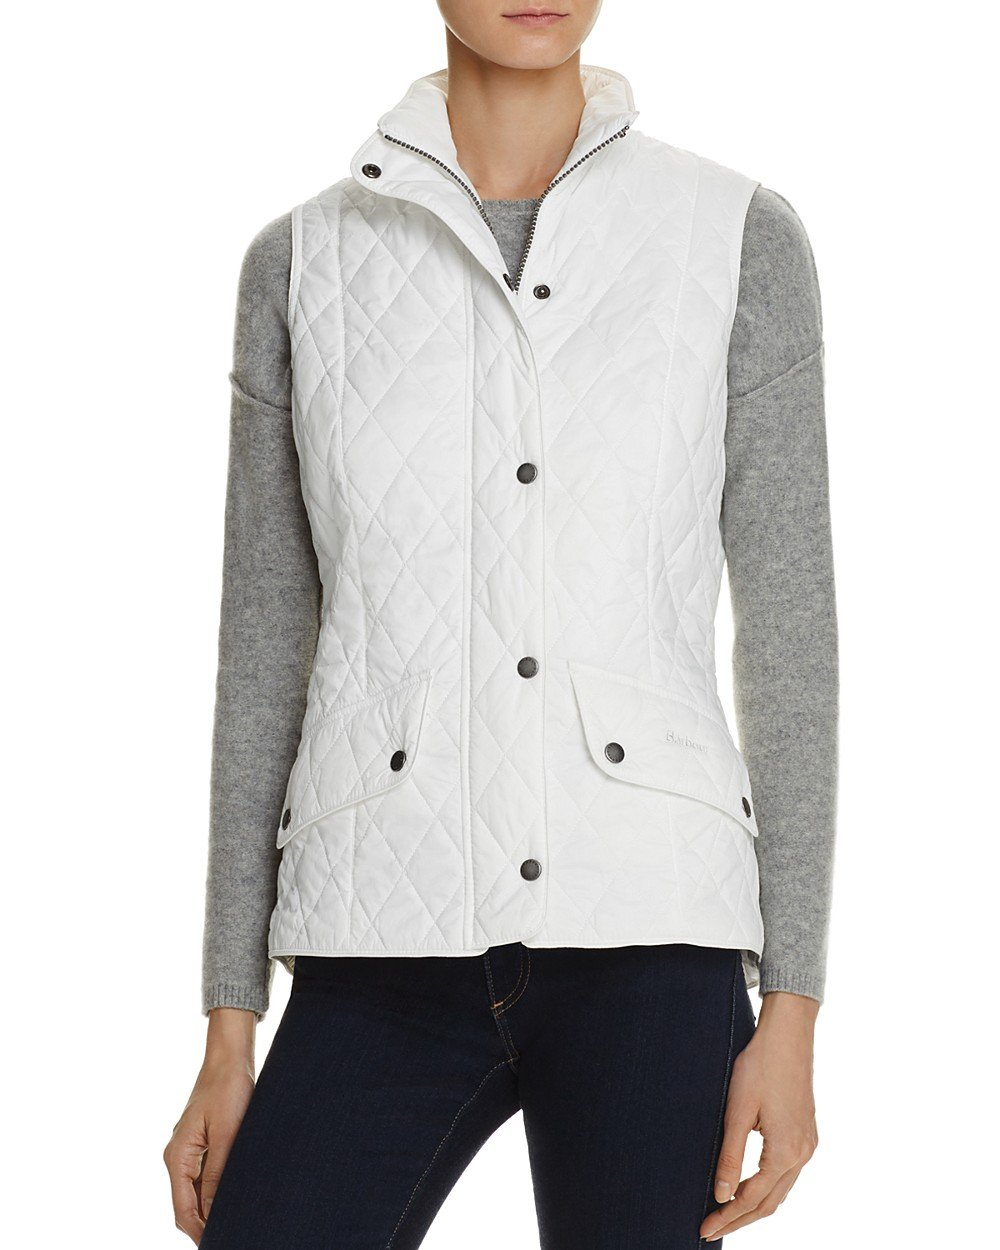 Barbour Women's Flyweight Quilted Vest White Small (Size 6) by Barbour (Image #1)